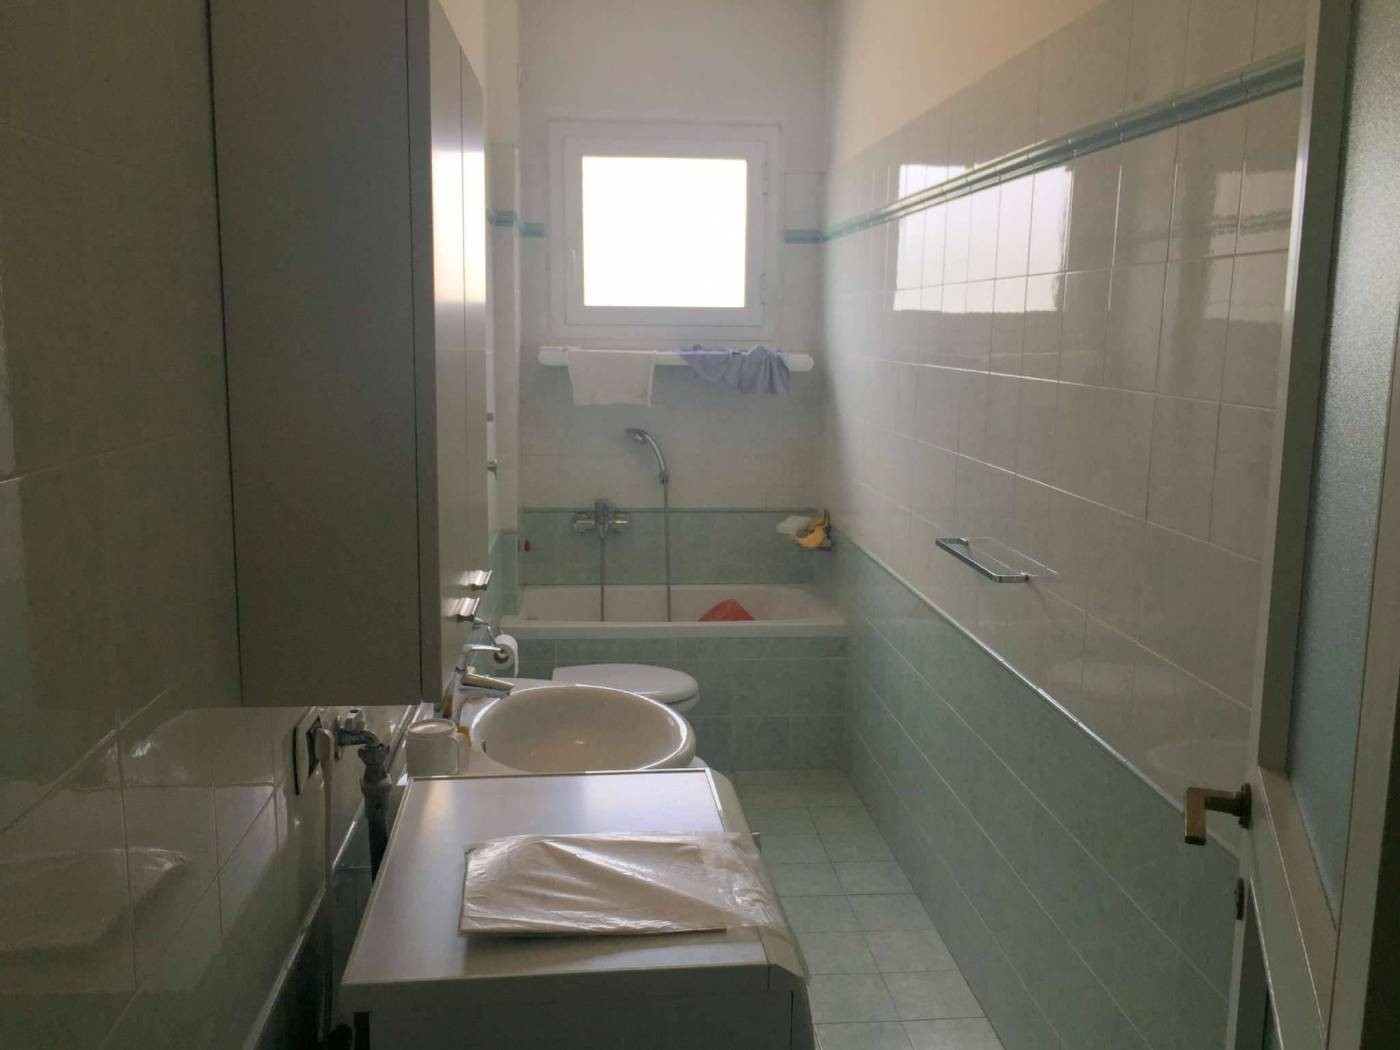 Student Apartment for rent in Via Medeghino, 34, 2° floor, in Milano, Italy